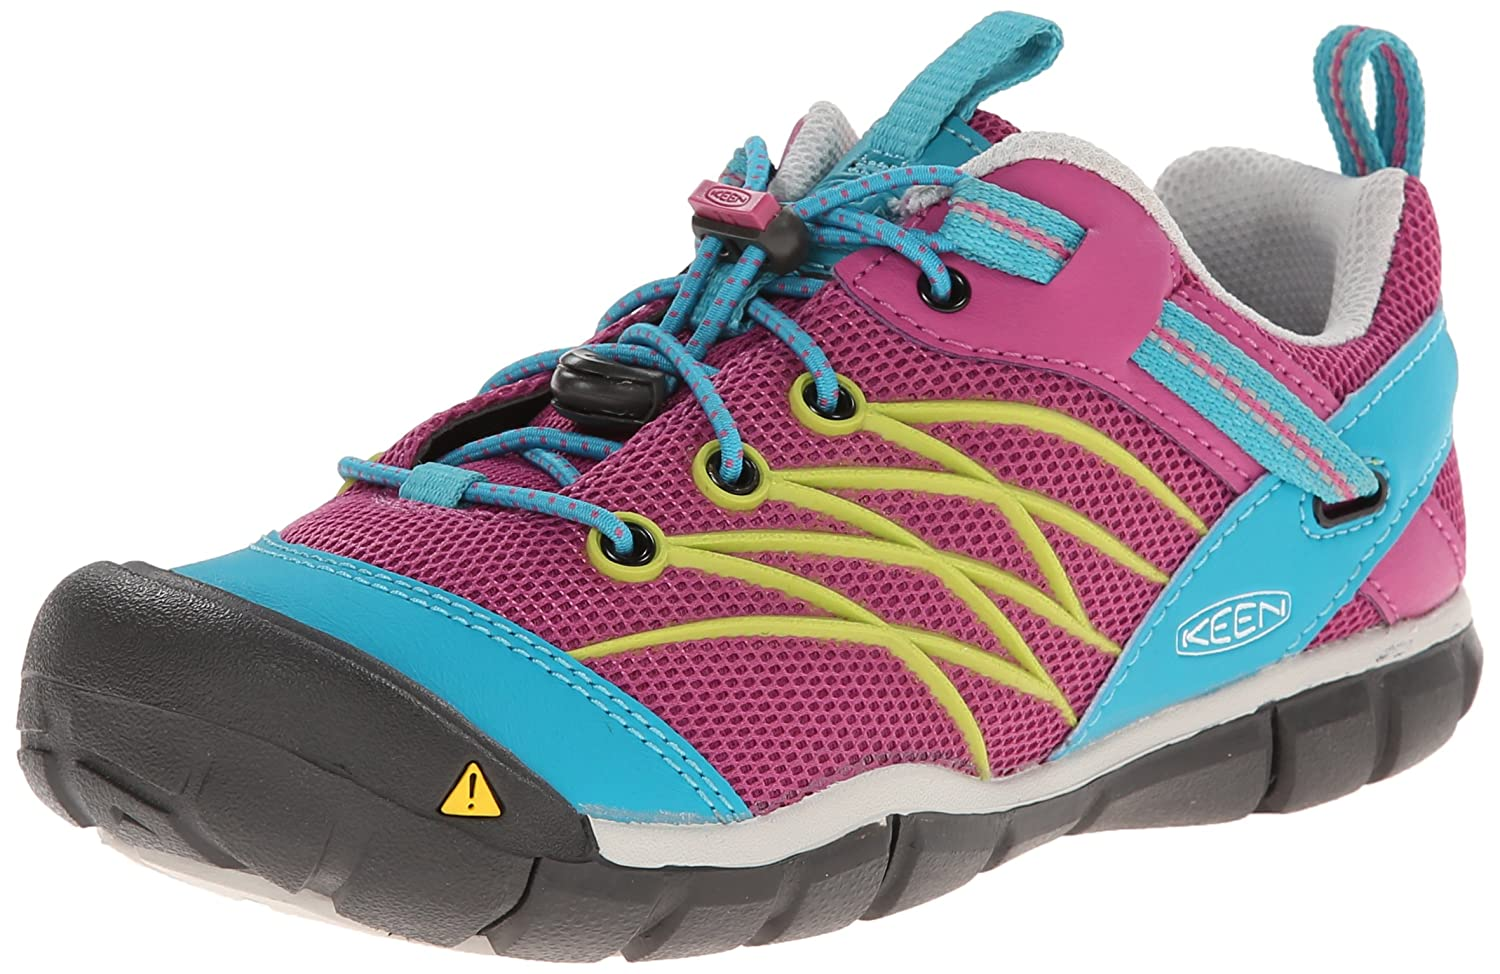 KEEN Chandler CNX Hiking Shoe (Toddler/Little Kid/Big Kid) soccer shoe toddler little kid big kid synthetic leather upper rubber soles 31 44casual outdoor indoor light weight running